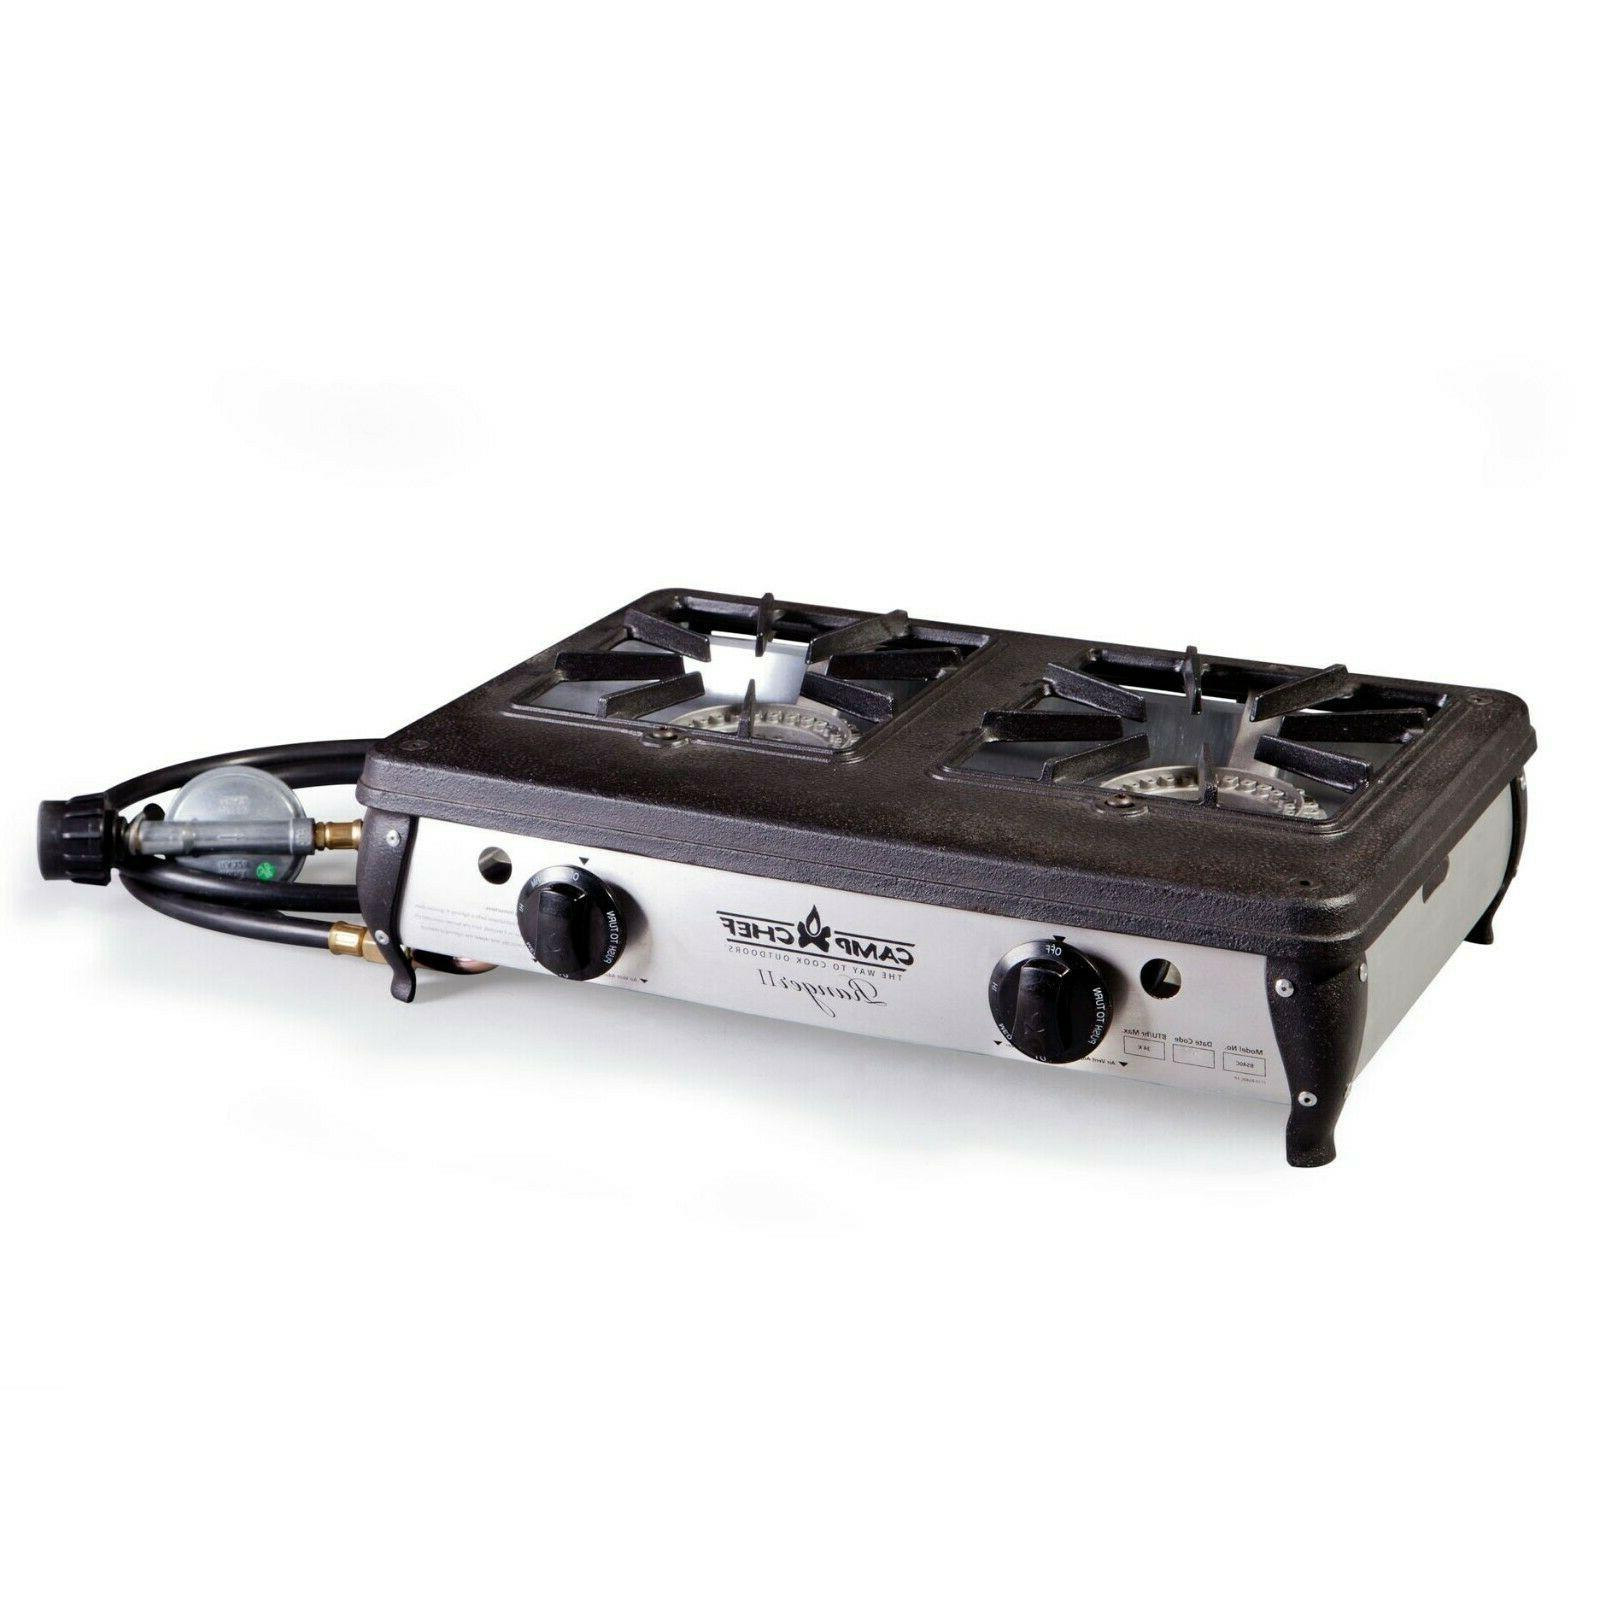 Camp Chef Ranger II Portable Outdoor Camping Camp 2 Burner P